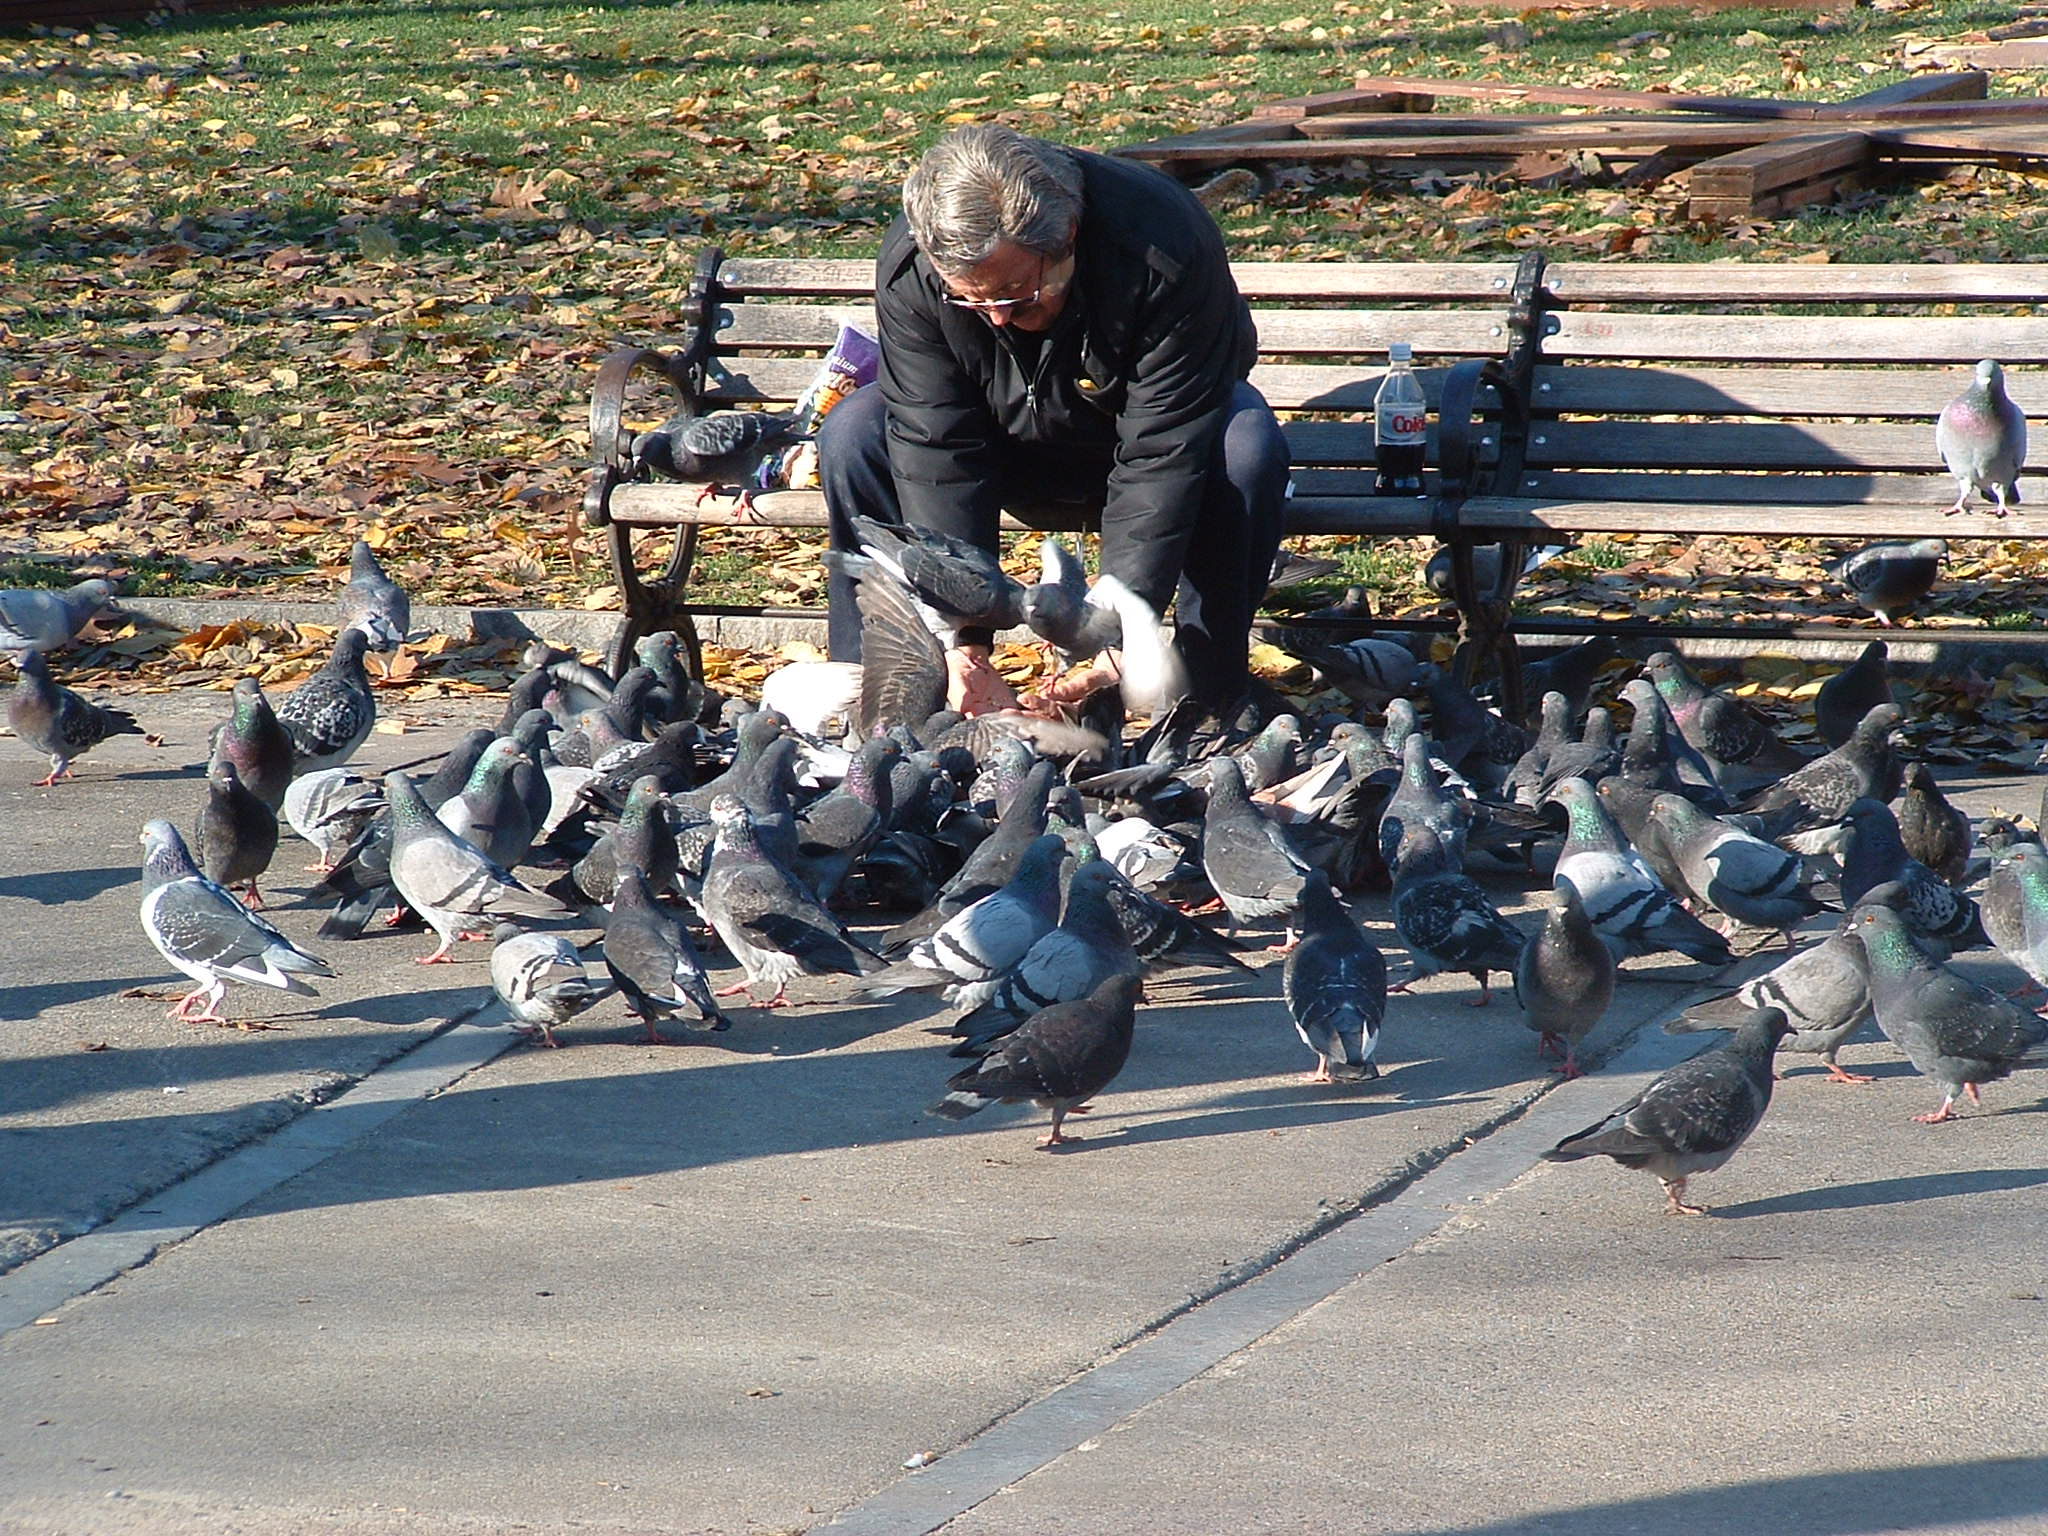 File:Man feeding pigeons.jpg - Wikimedia Commons